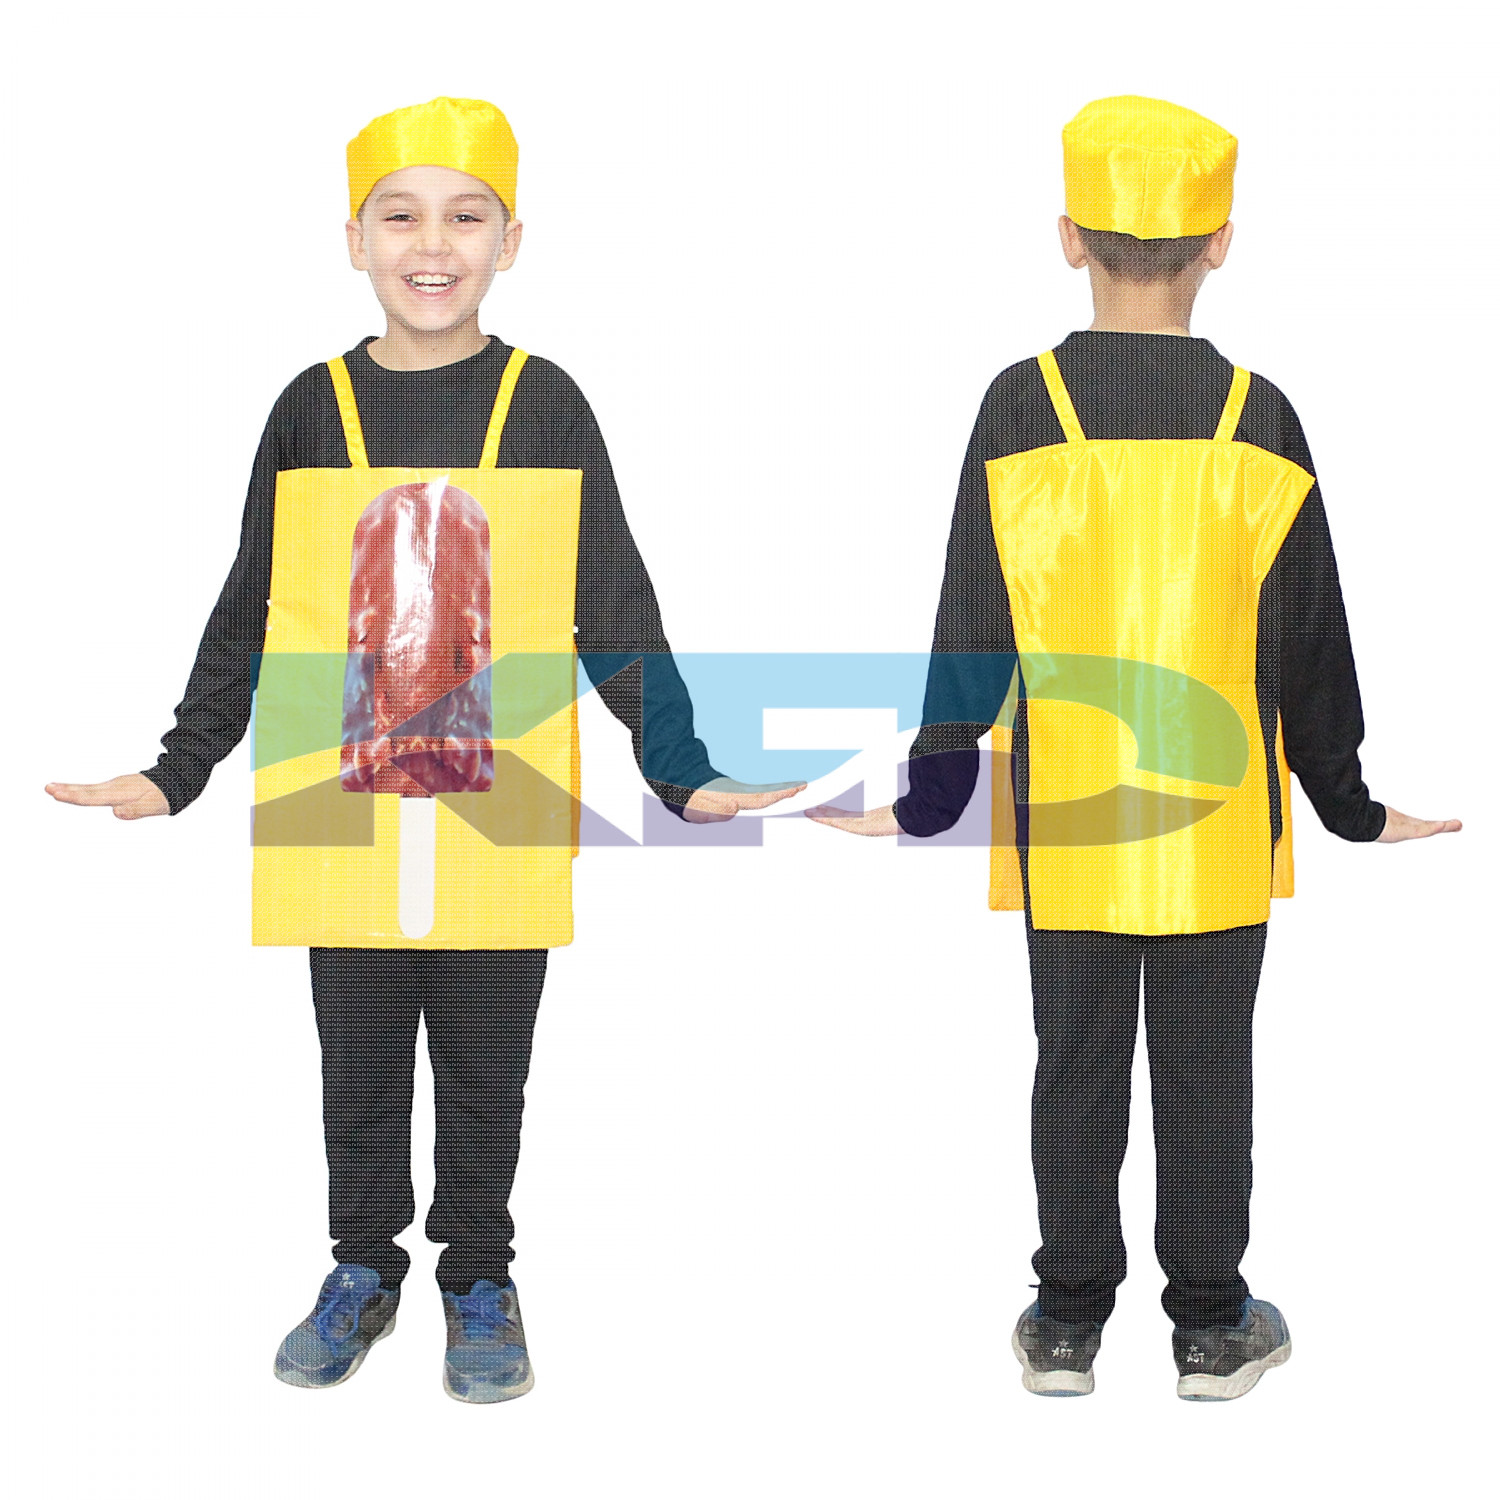 Ice Cream Fancy Dress/Chocobar Fancy Dress/Chocolate Fancy Dress/Junk Food Costume/For Kids Annual function/Theme Party/Competition/Stage Shows/Birthday Party Dress